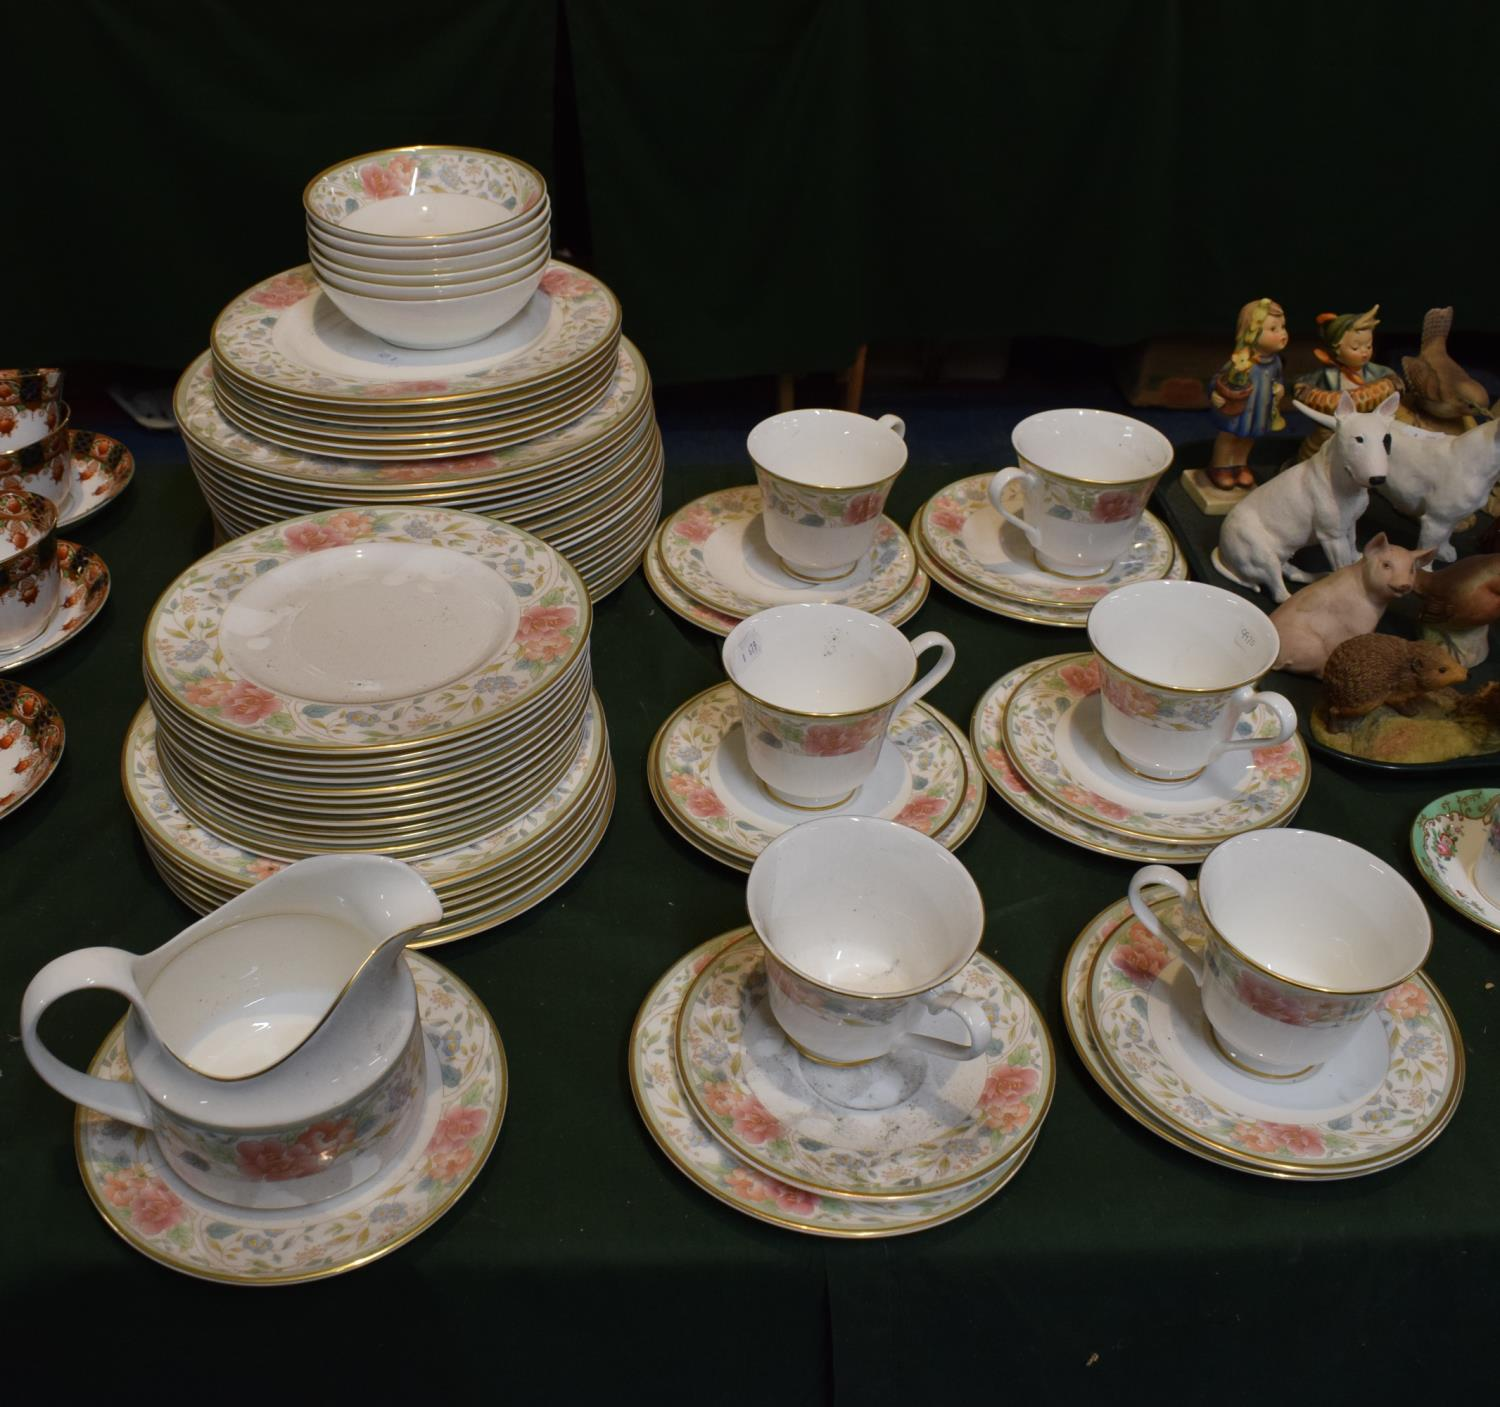 Lot 229 - A Collection of Royal Doulton Claudia Pattern Tea and Dinnerwares to Include Seventeen Dinner